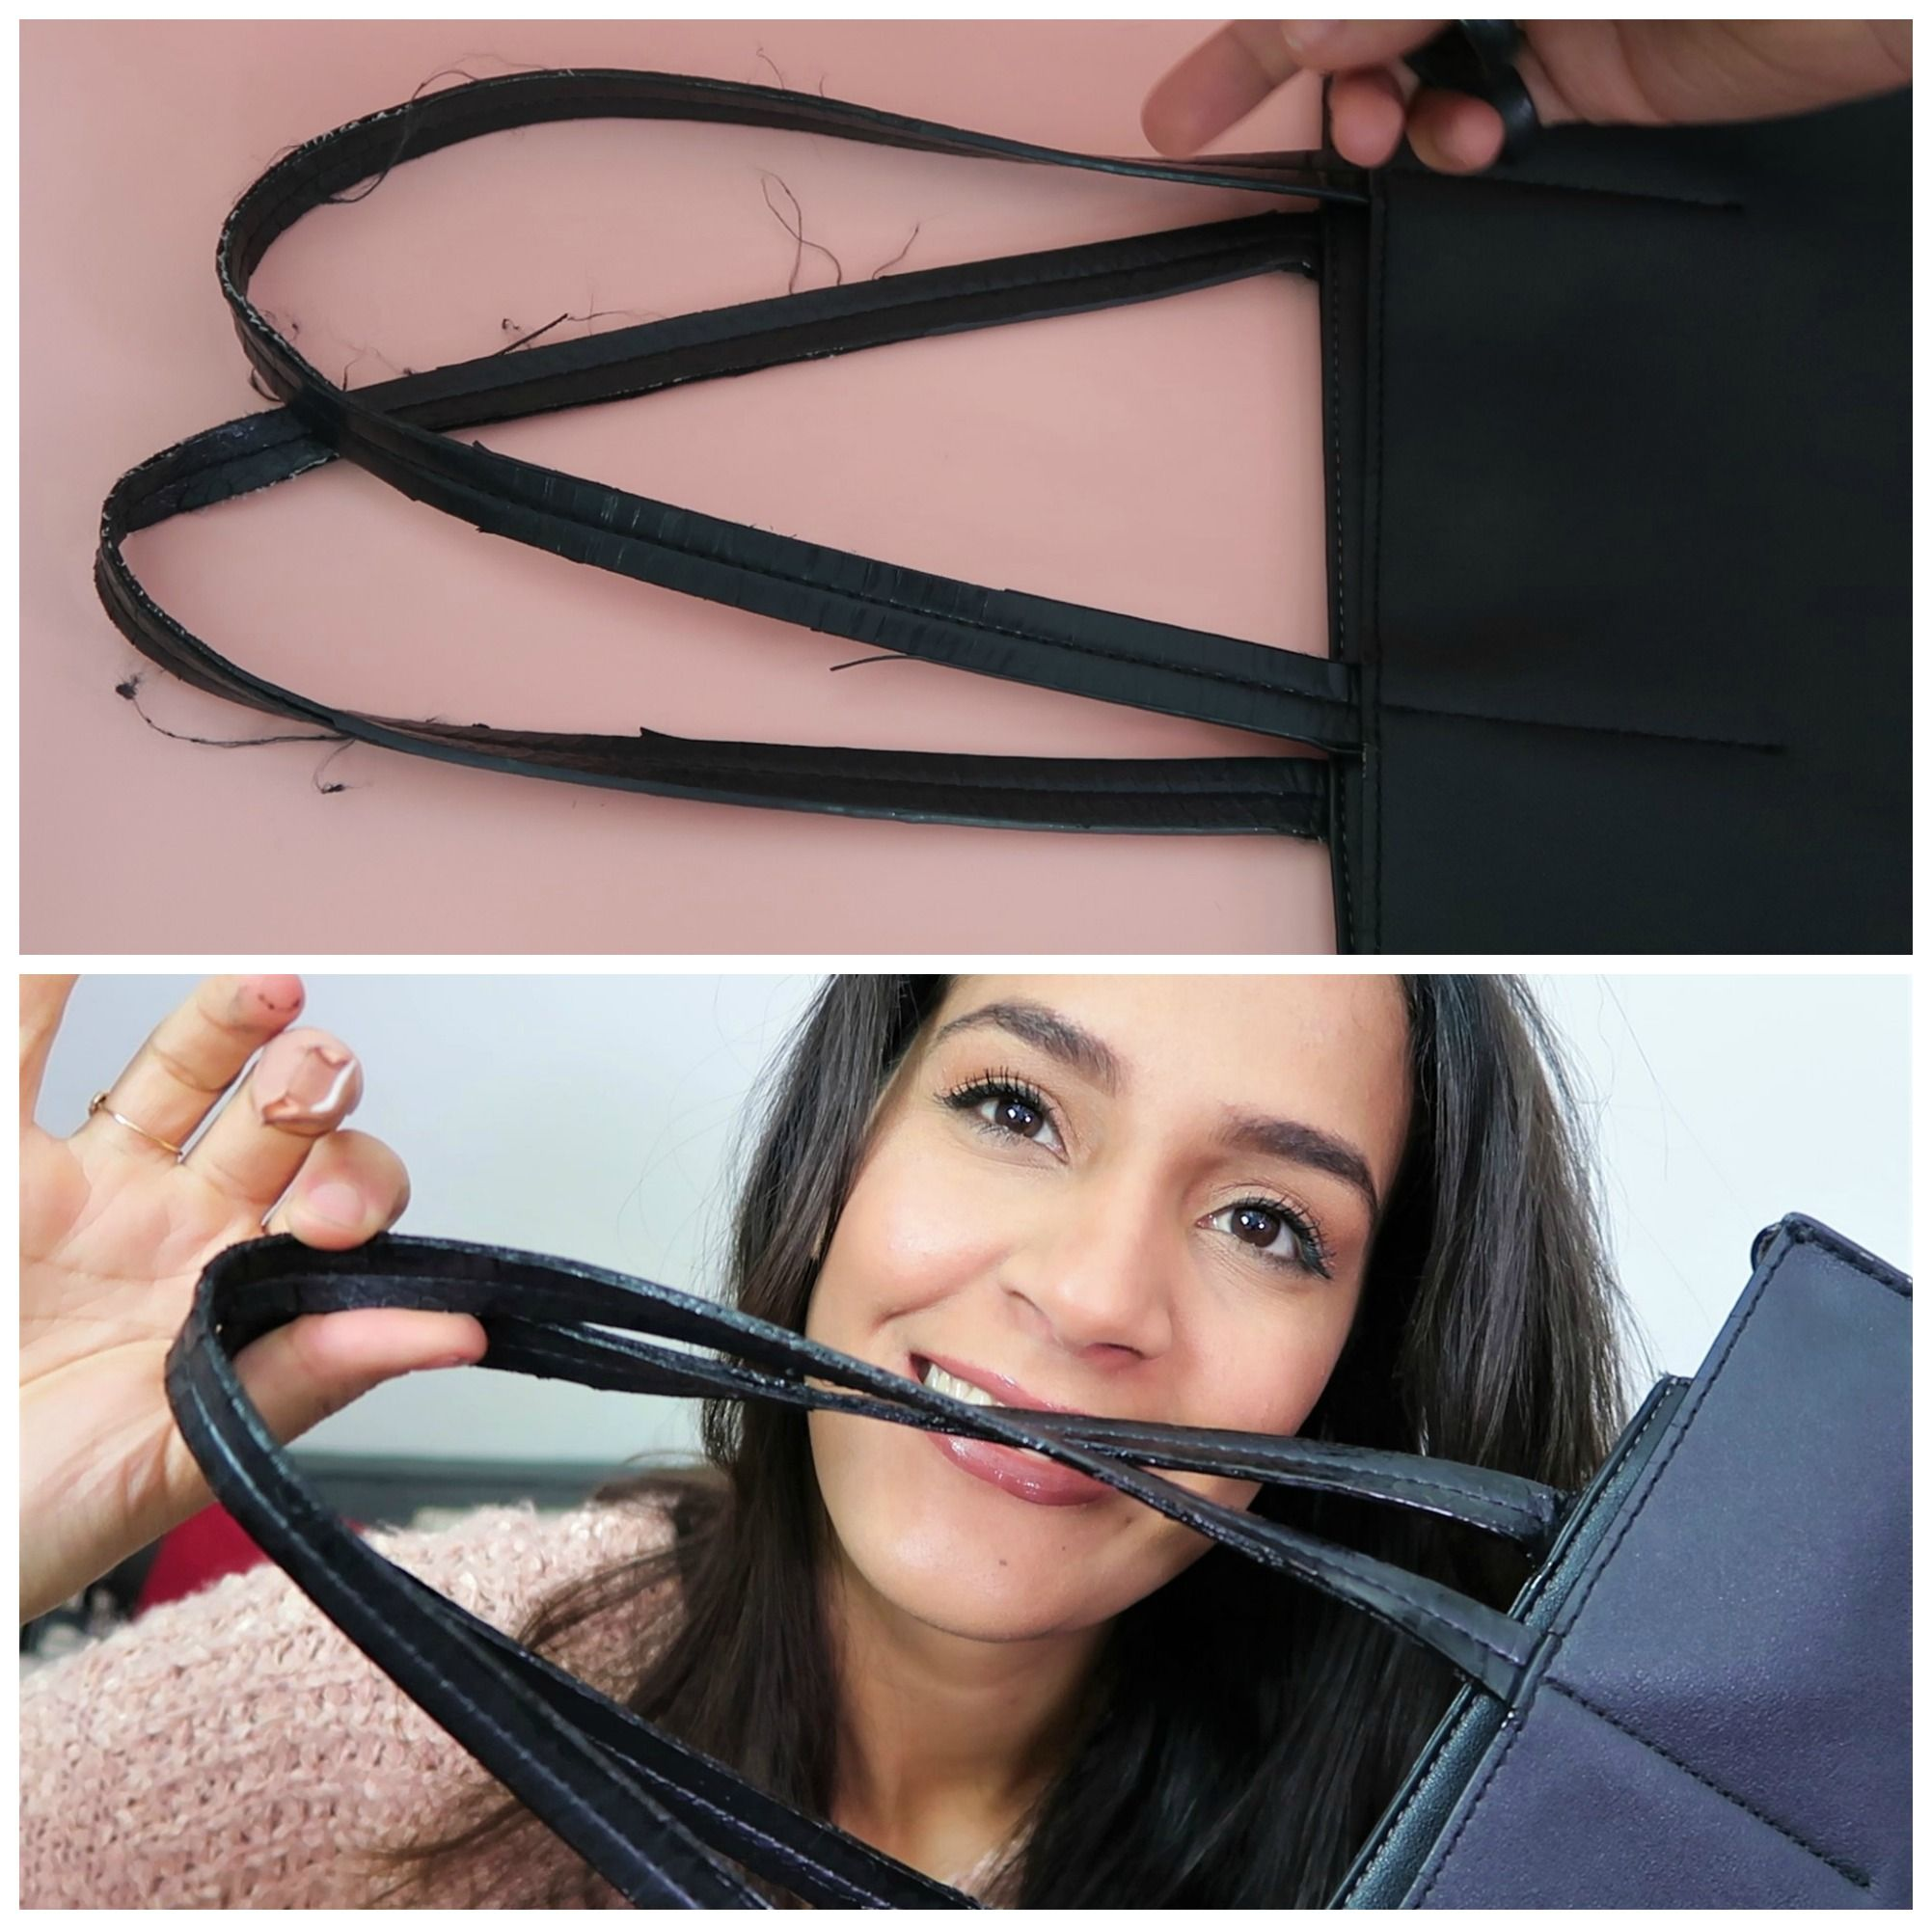 Diy how to repair frayed purse straps in 2020 purse